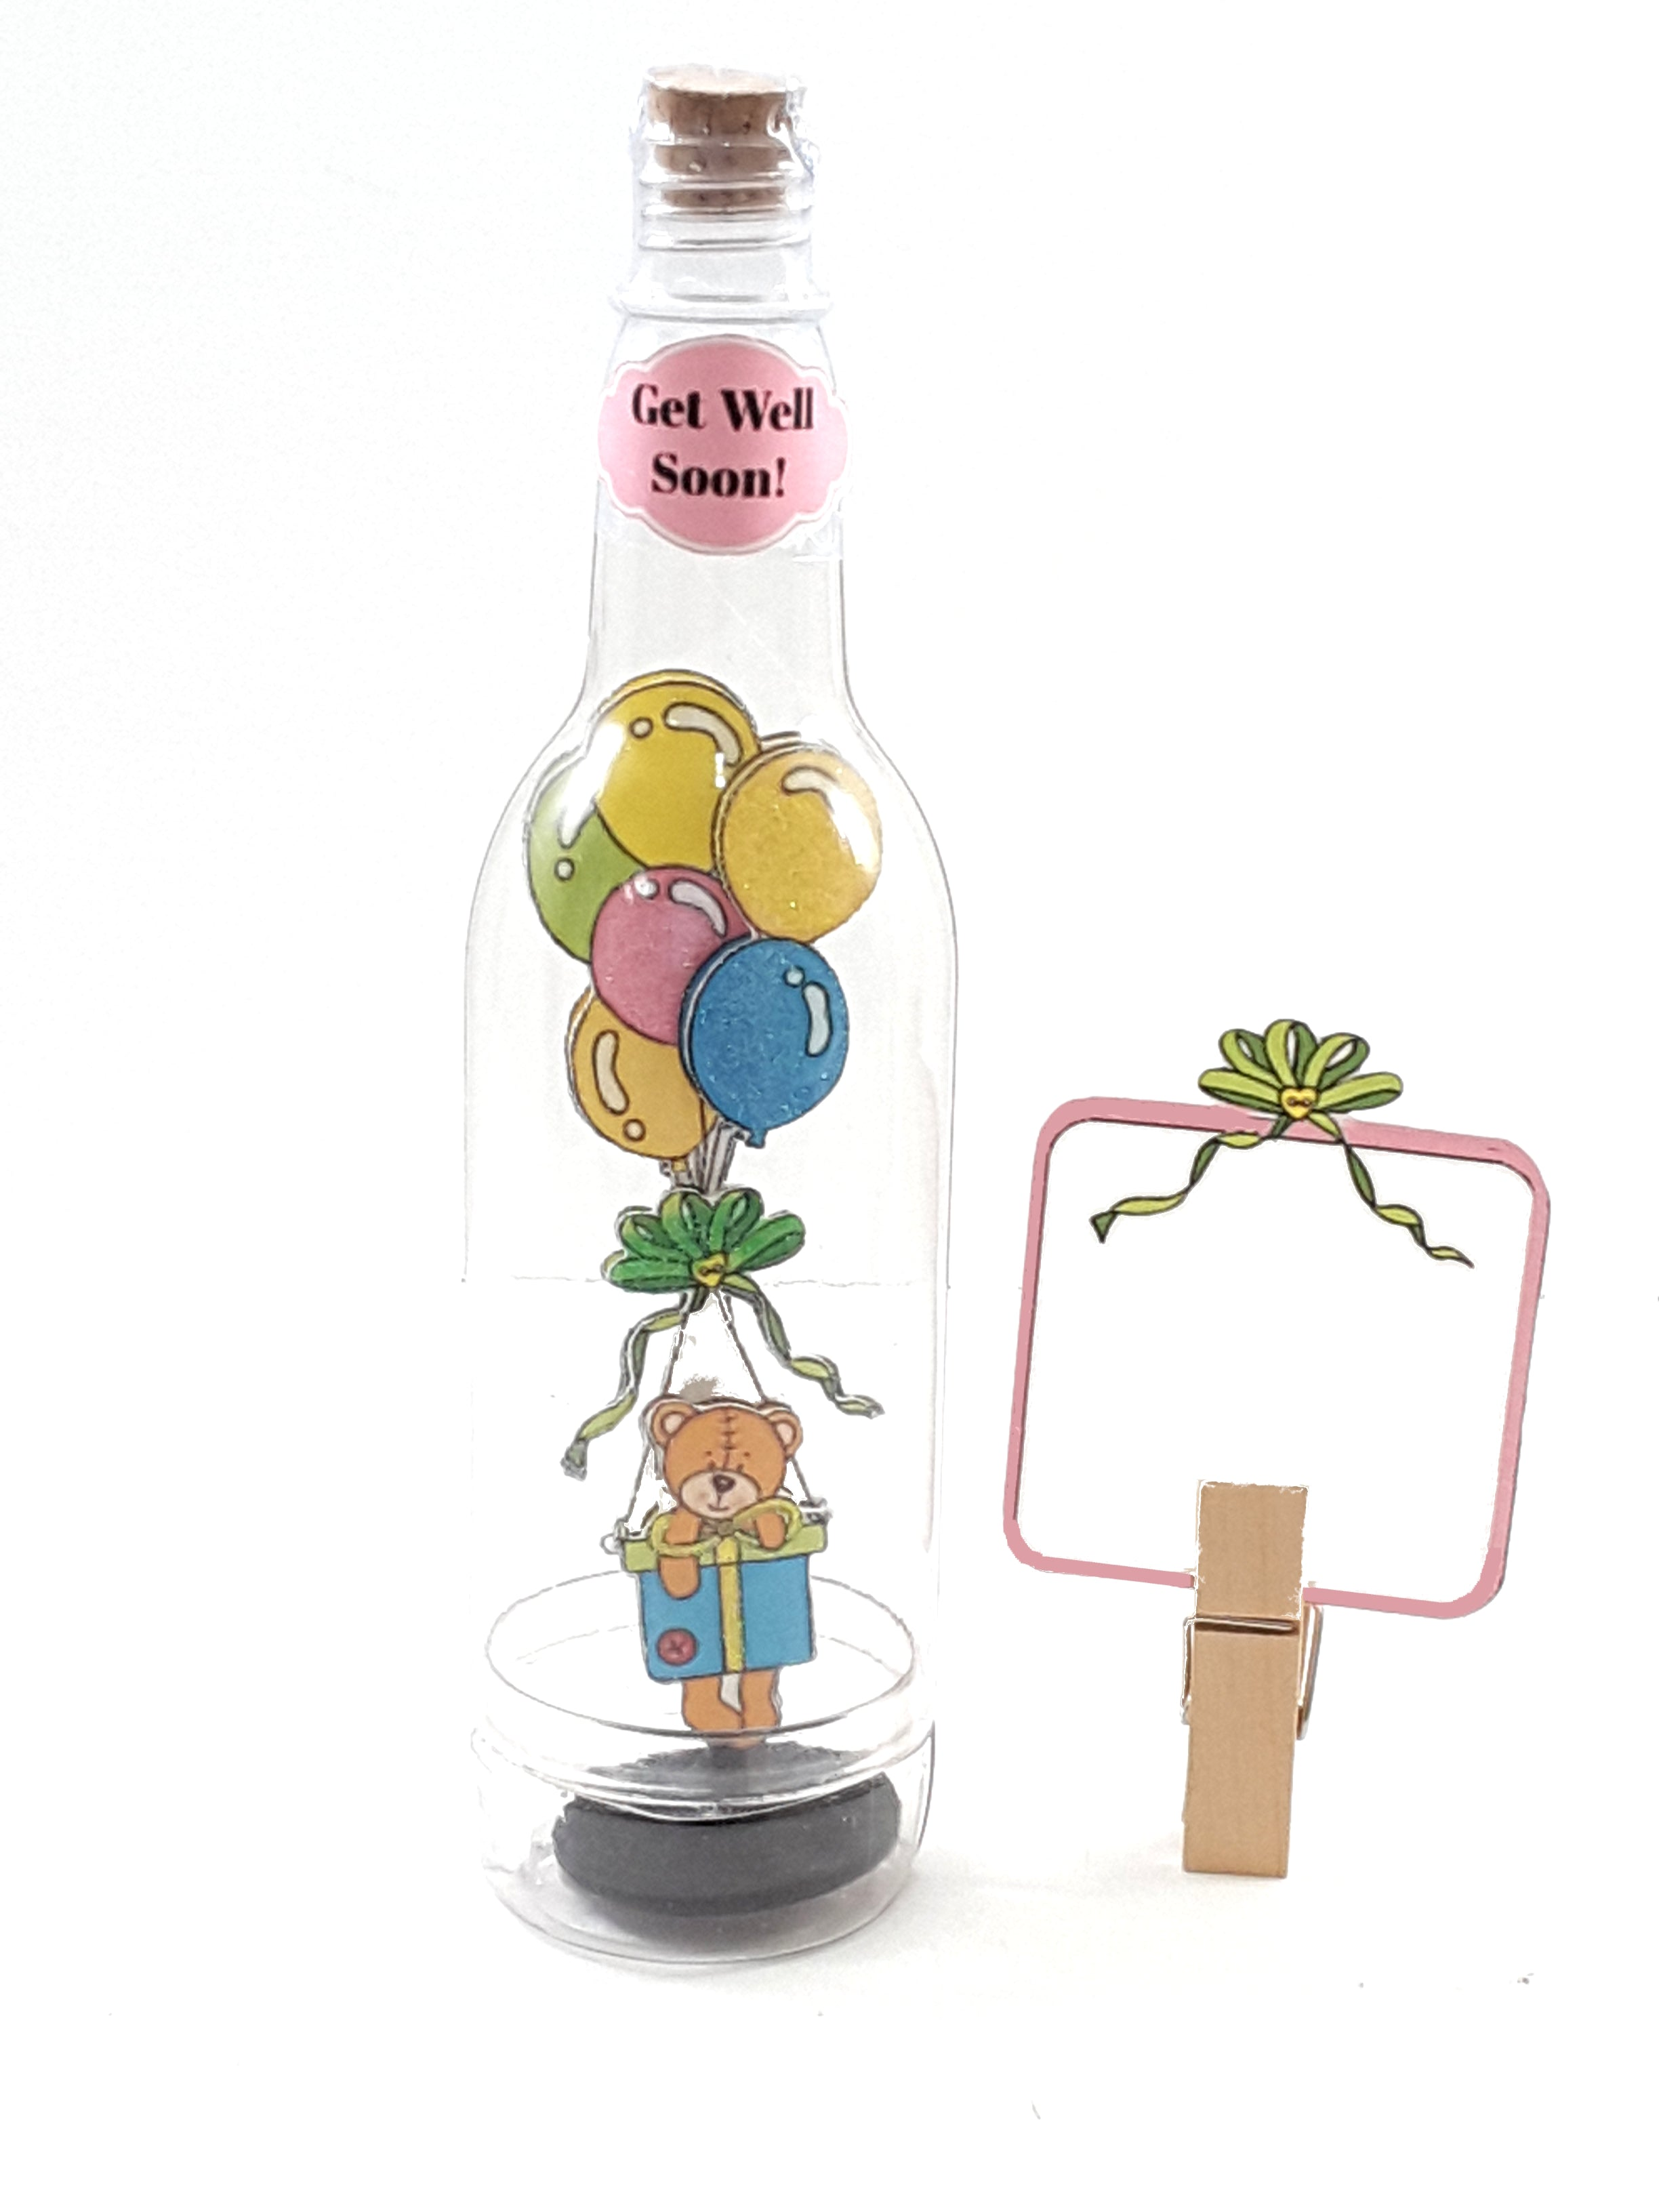 All-Occasion Personalized Message in a Bottle with 3D Teddy Bear